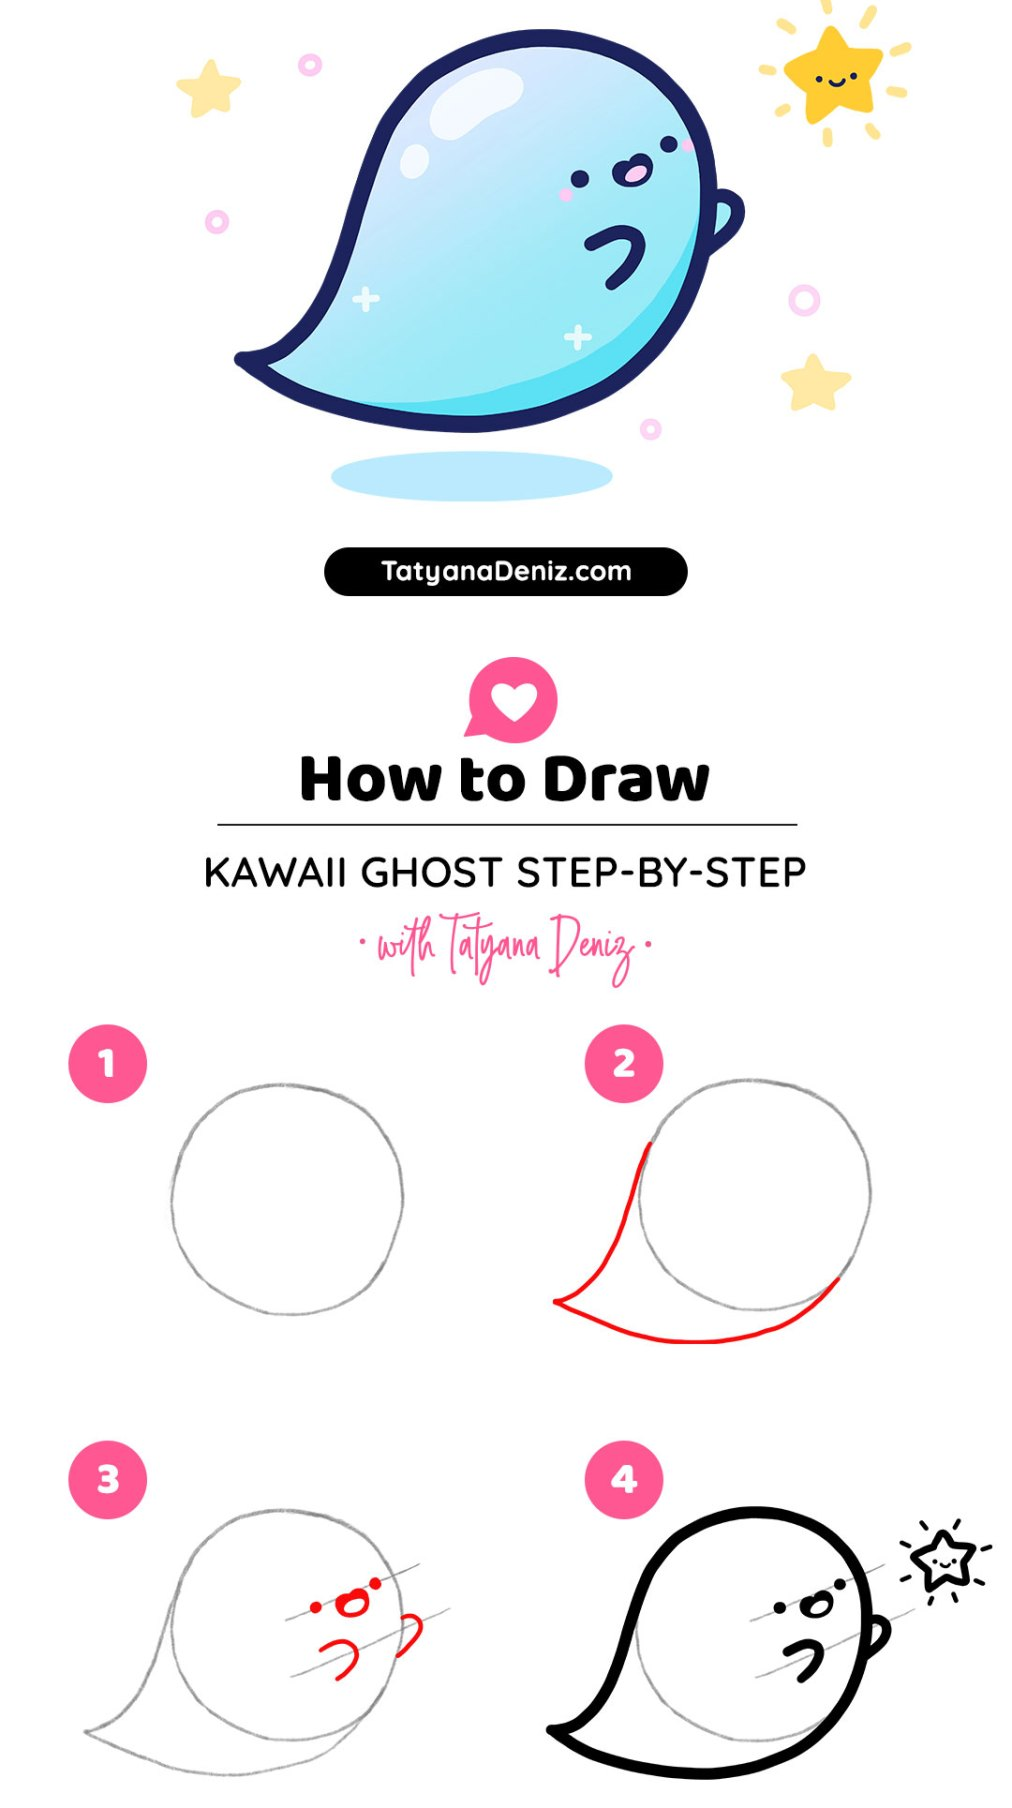 Kawaii Ghost Art by Tatyana Deniz